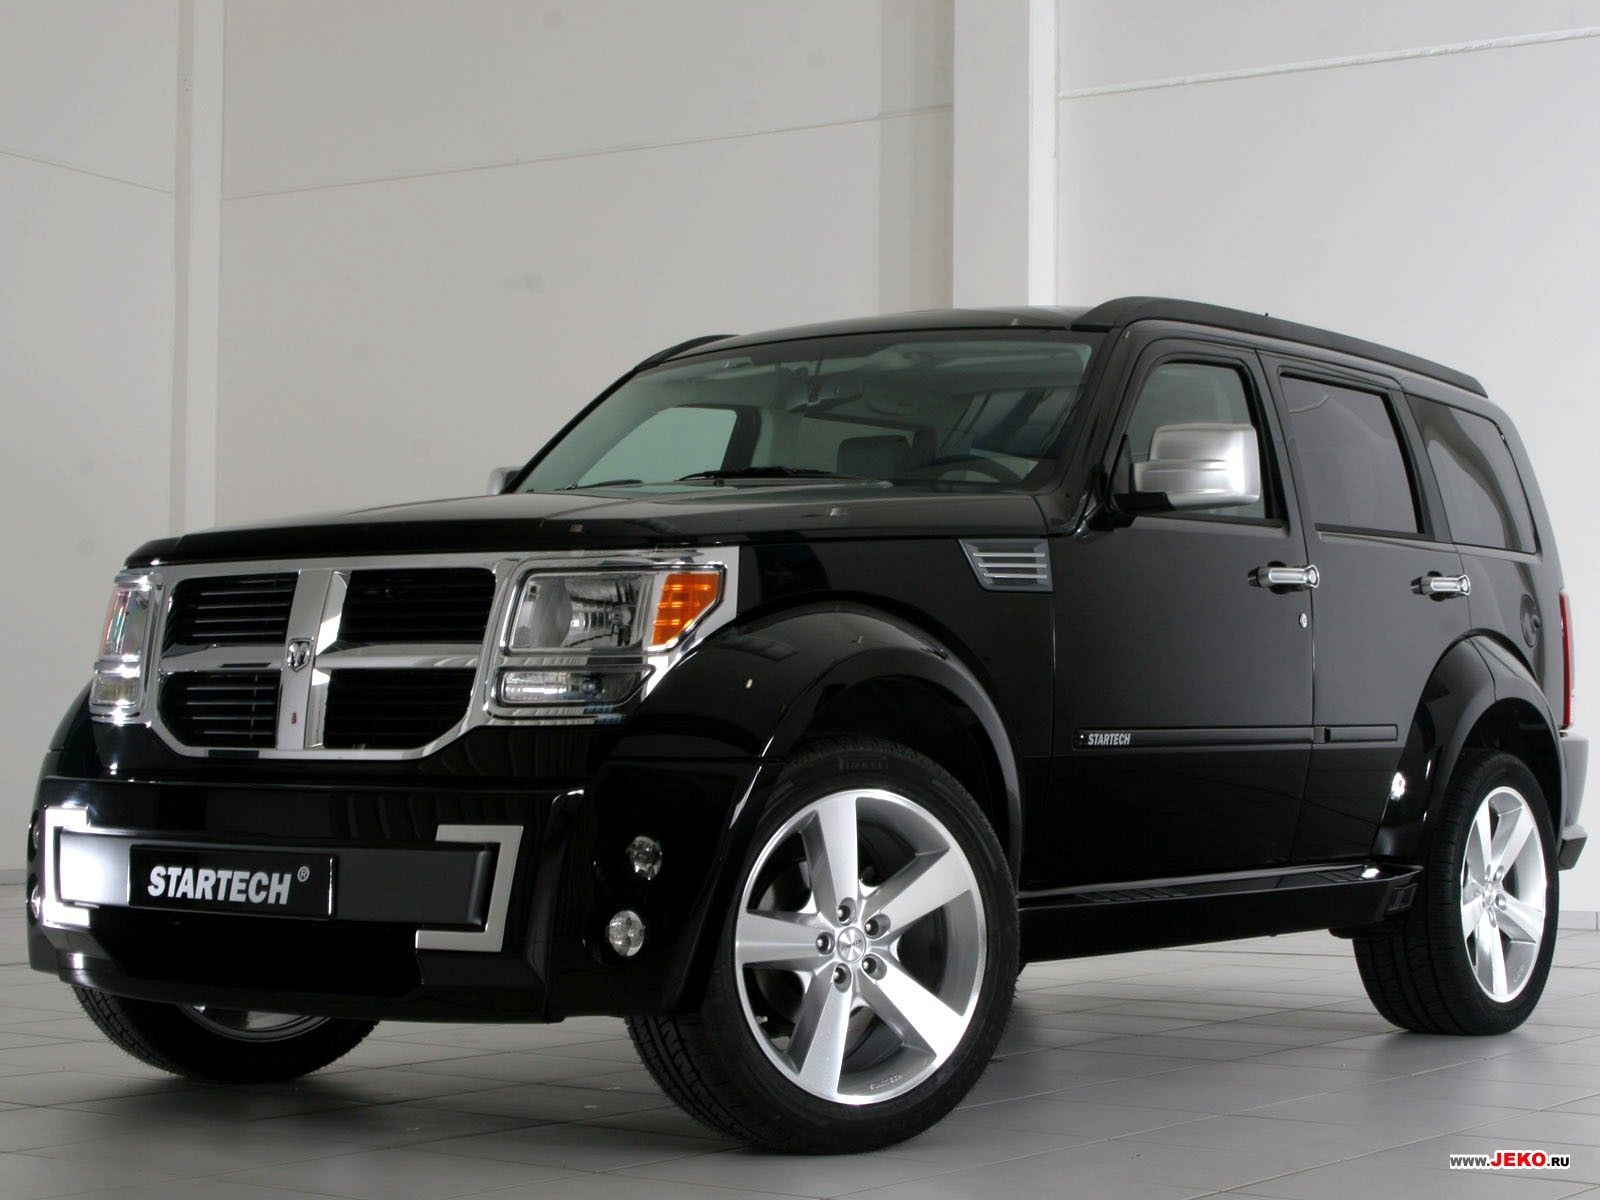 The dodge nitro suv large and in charge